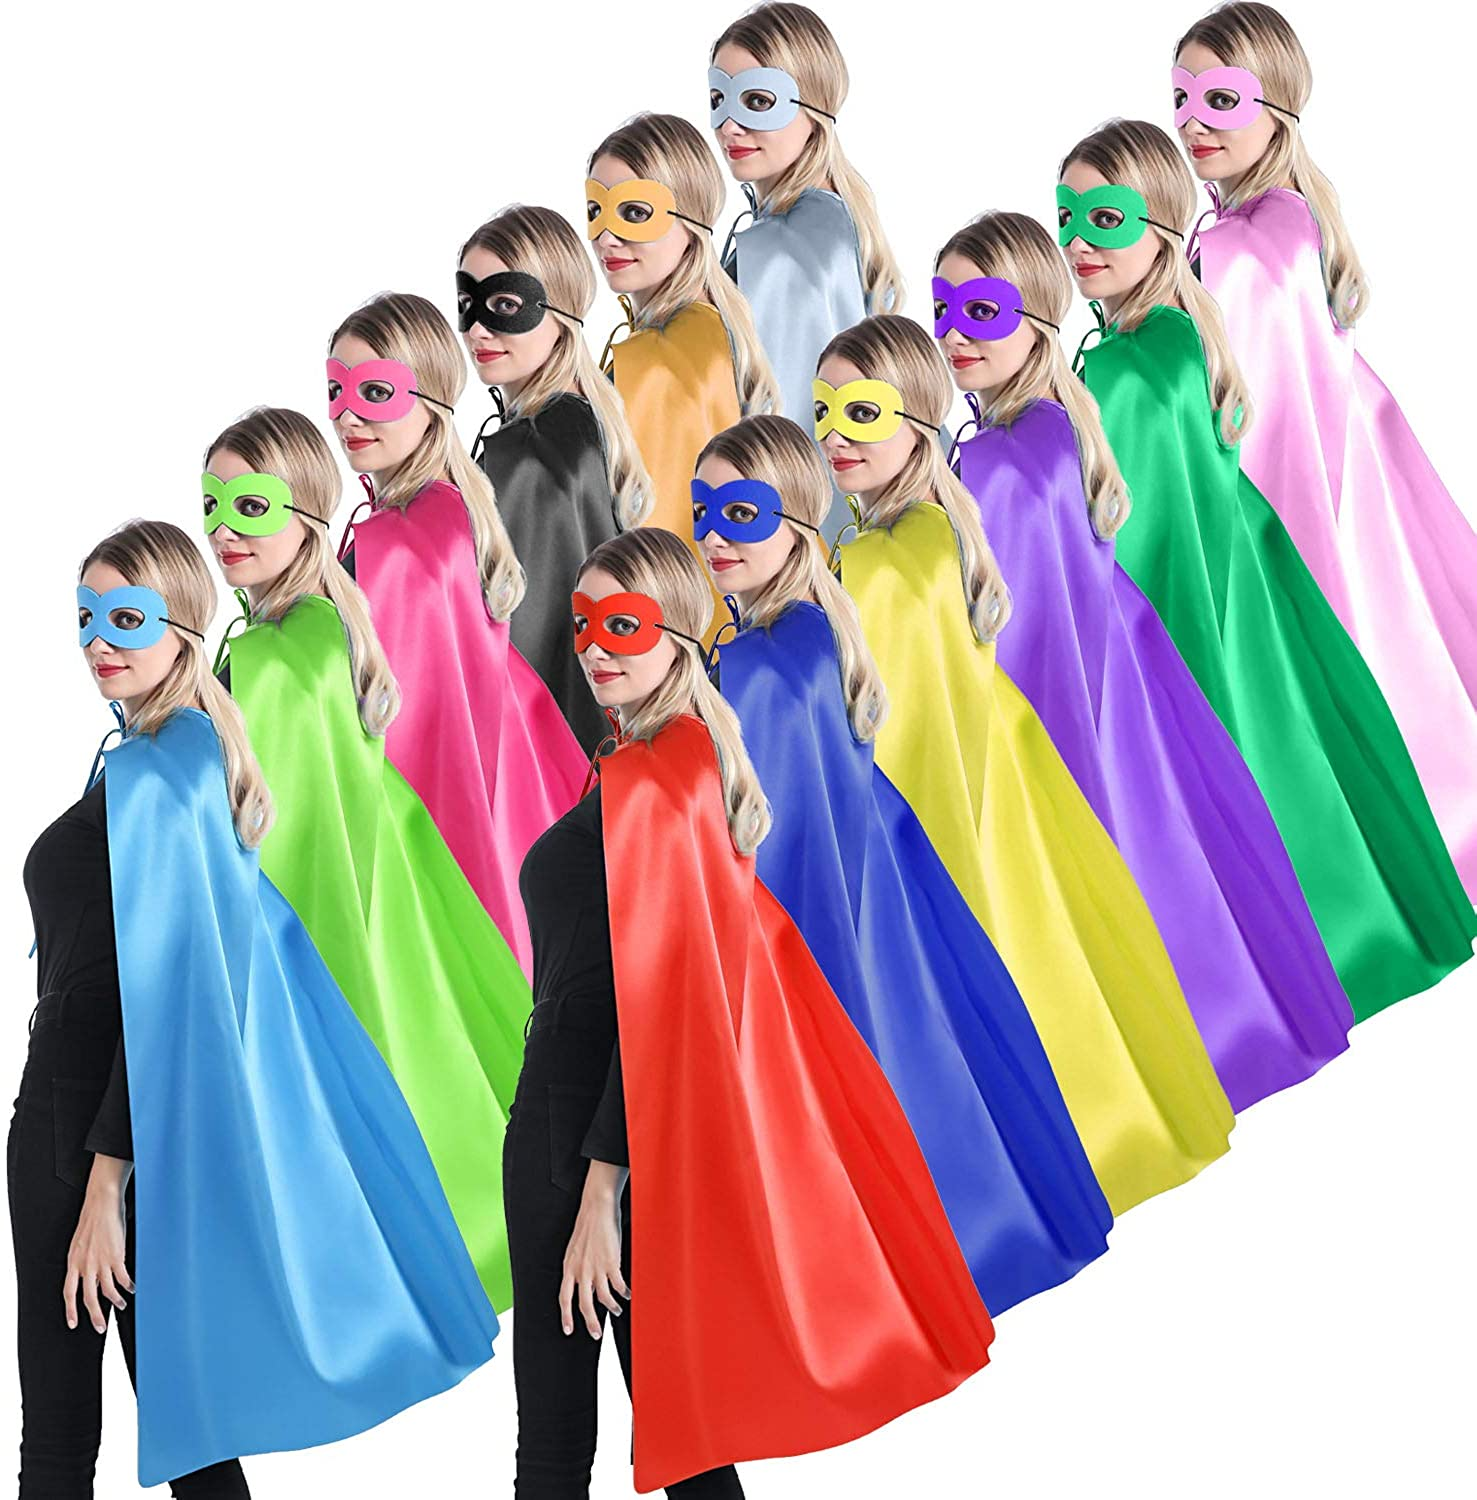 Adults Superhero Capes and Masks for Women Teenagers - Man Sale safety item Pa or